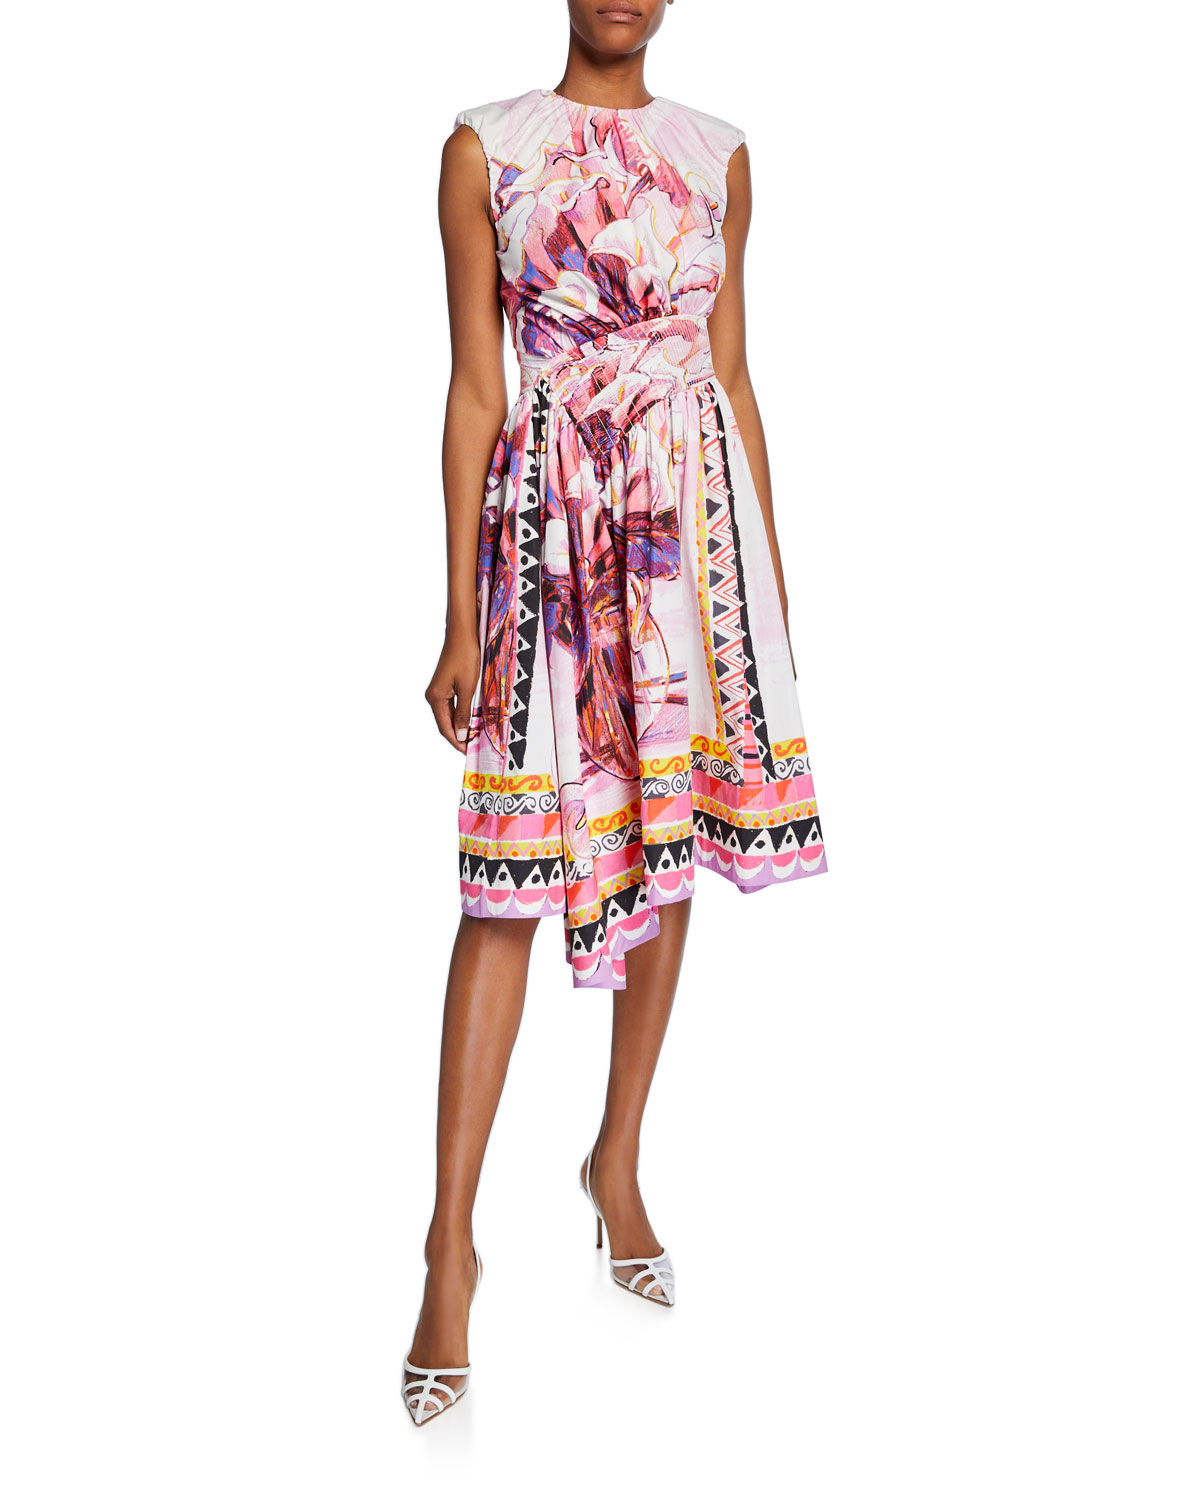 Prada Dresses SLEEVELESS FLOWERPOT DRESS